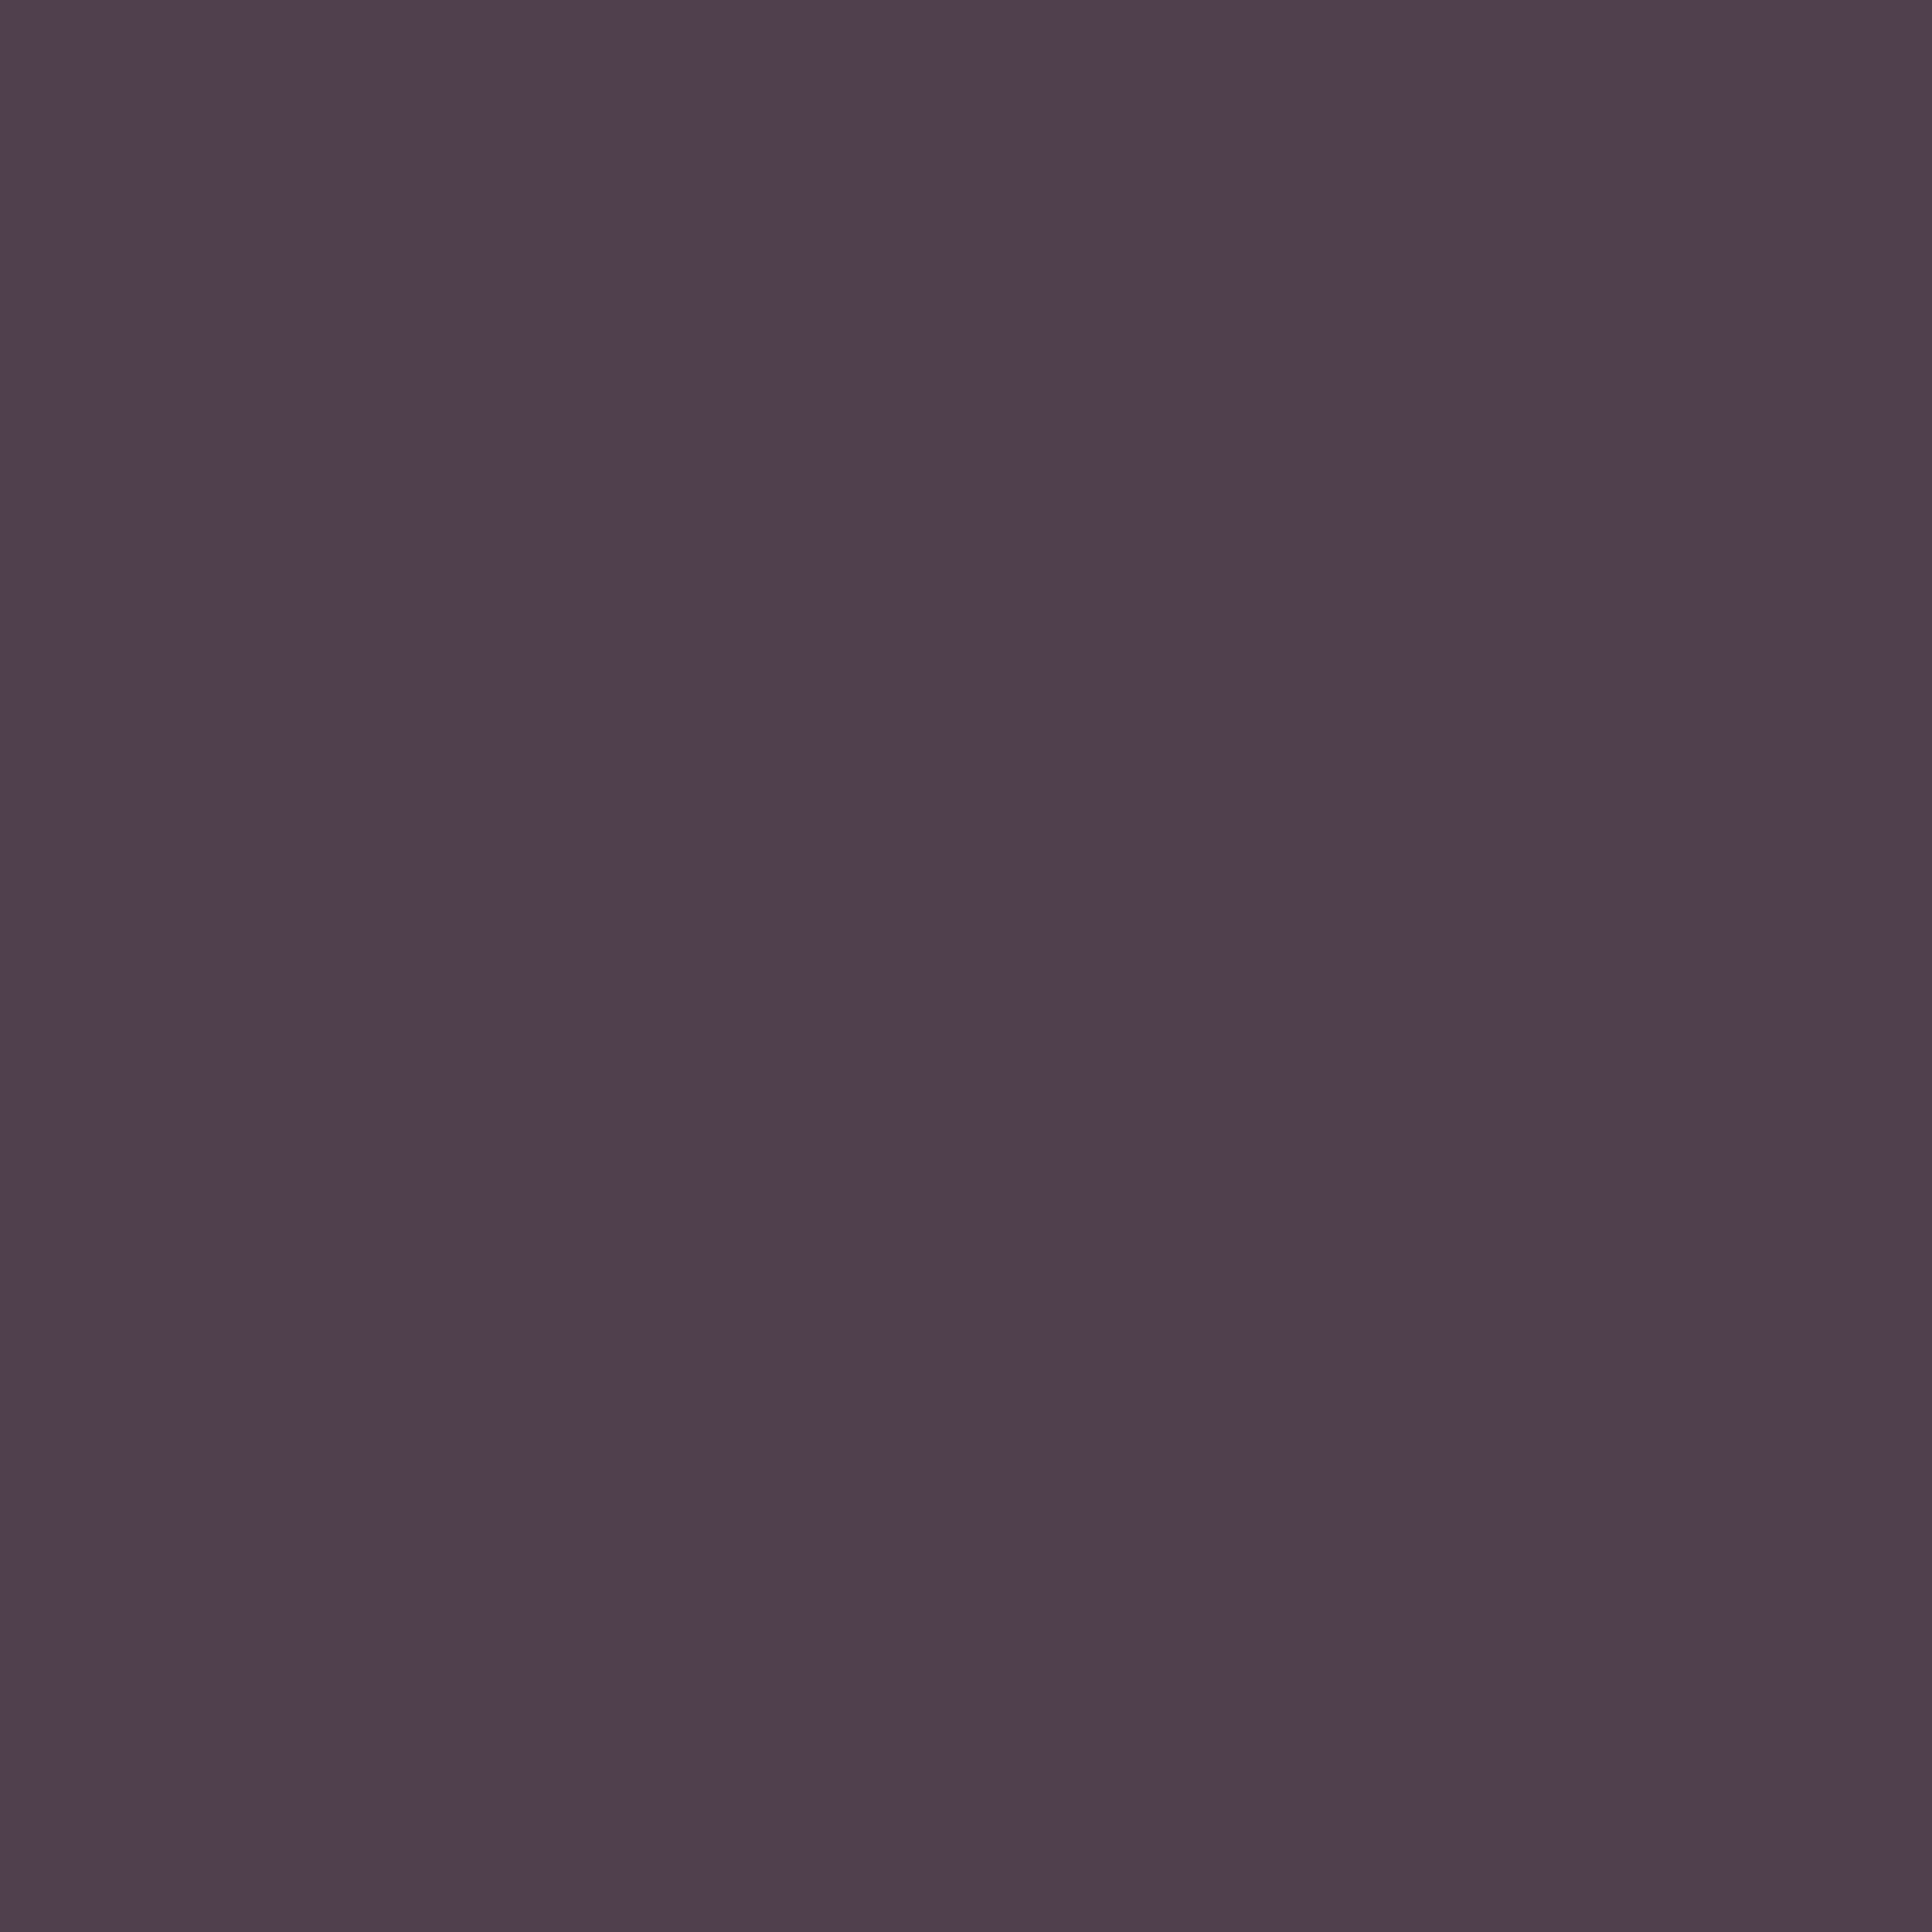 2048x2048 Purple Taupe Solid Color Background